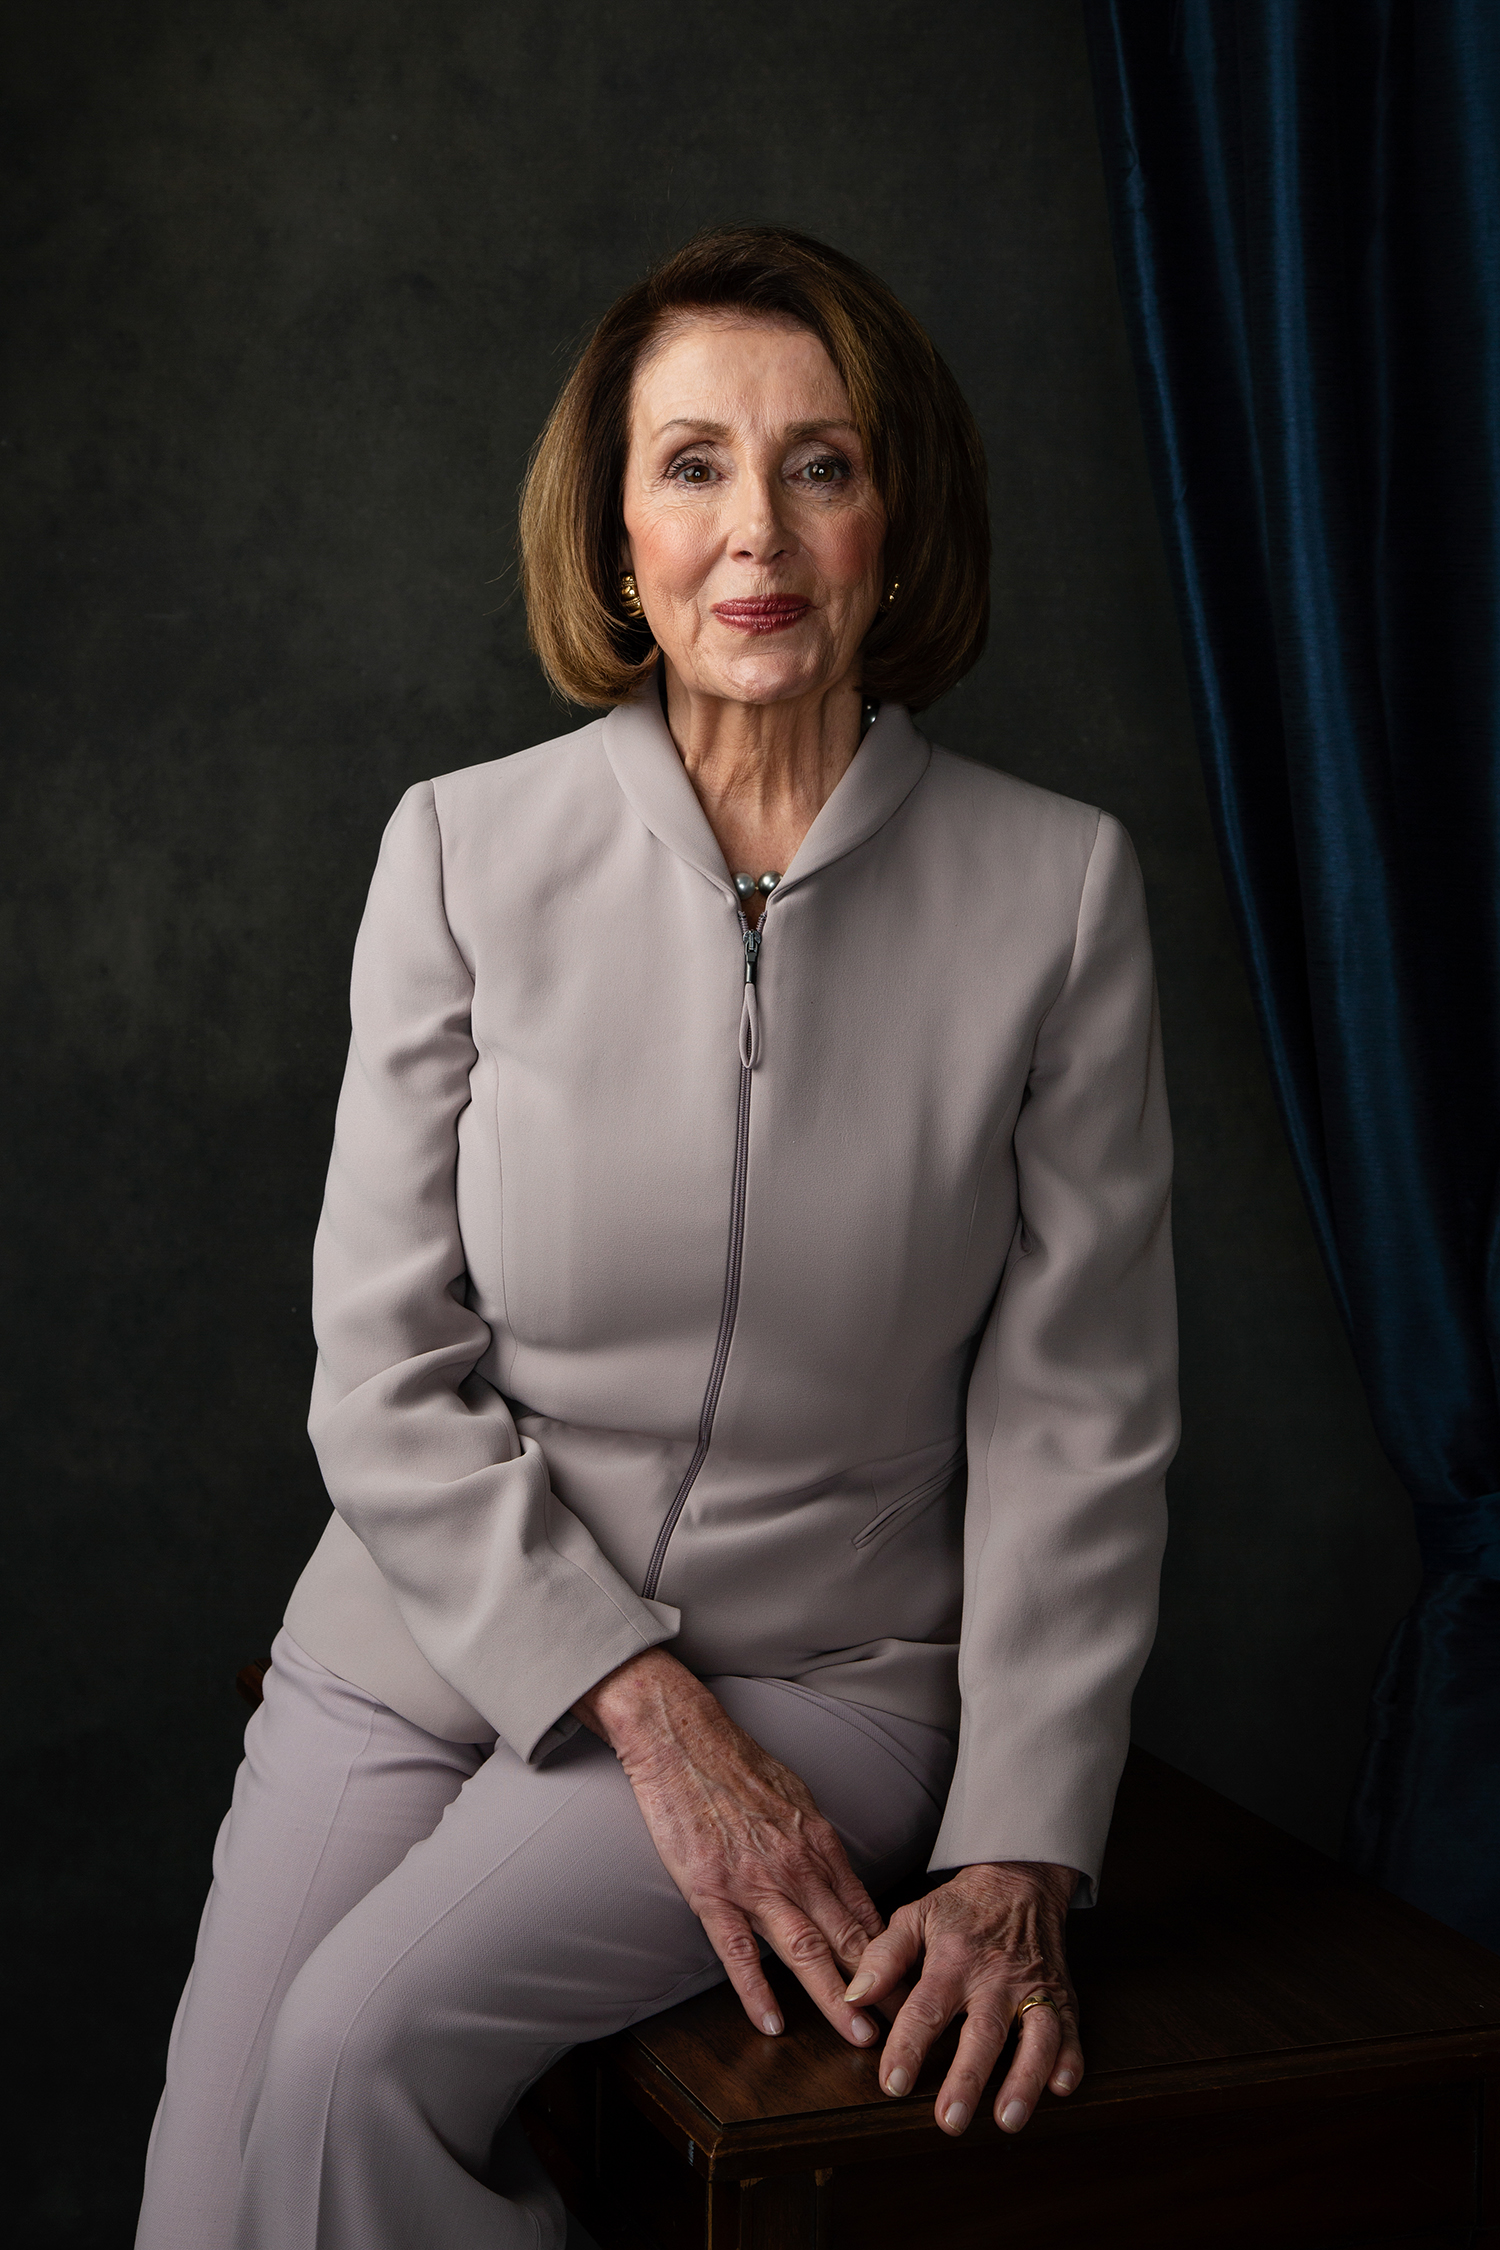 Nancy Pelosi *****HOLD FOR WOMEN IN CONGRESS PROJECT****Nancy Patricia Pelosi  is an American politician serving as Speaker of the United States House of Representatives since January 2019. First elected to Congress in 1987, she also served as Speaker from 2007 to 2011. She is the only female to have served as Speaker, and is the highest-ranking elected woman in United States history. Pelosi is second in the presidential line of succession, immediately after the Vice President. A member of the Democratic Party, Pelosi is currently in her 17th term as a congresswoman, representing California's 12th congressional district.Elizabeth D. Herman for The New York Times                              NYTCREDIT: Elizabeth D. Herman for The New York Times